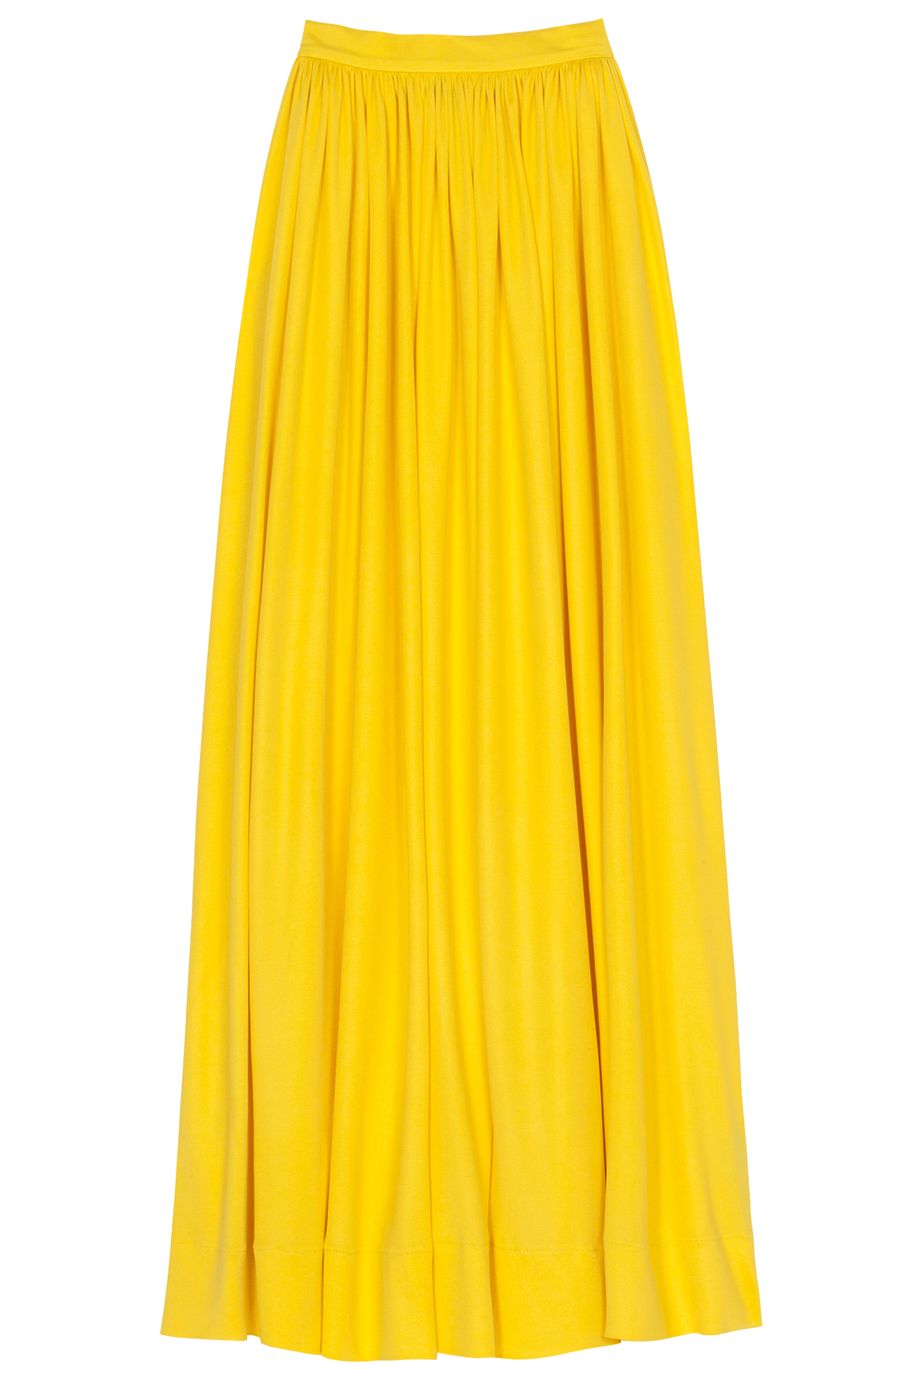 Martin grant Lk15 Long Silk Jersey Skirt in Yellow | Lyst